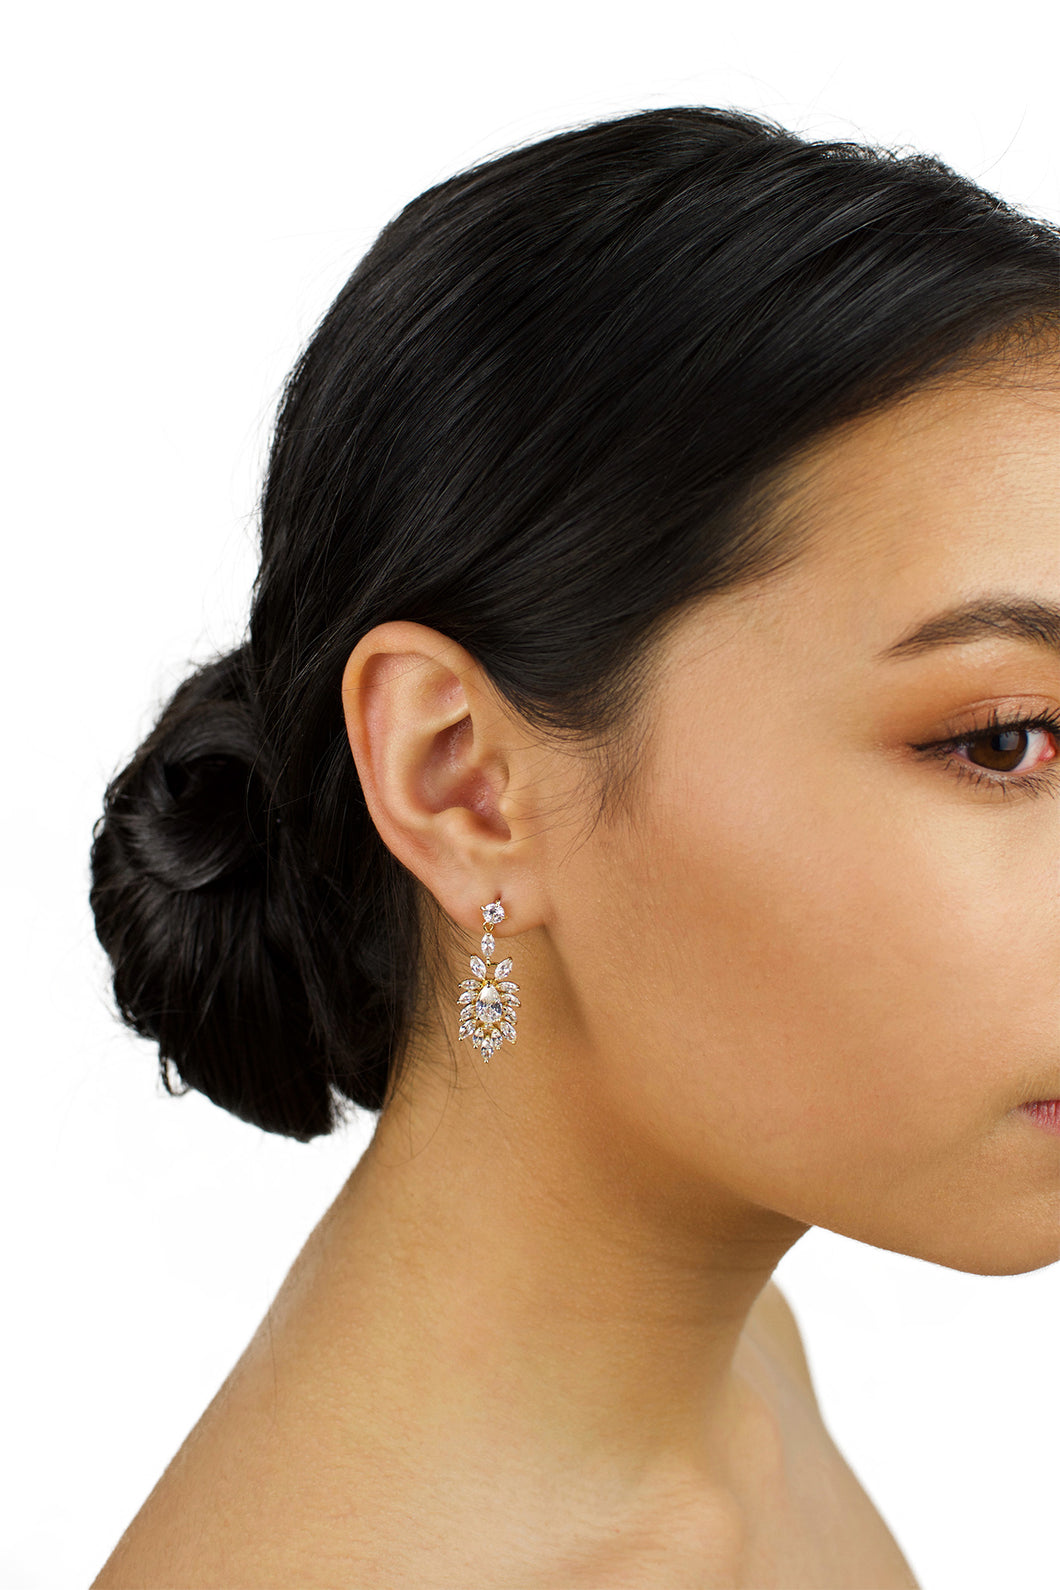 Model wears a gold drop earring in her ear with dark hair and a white background